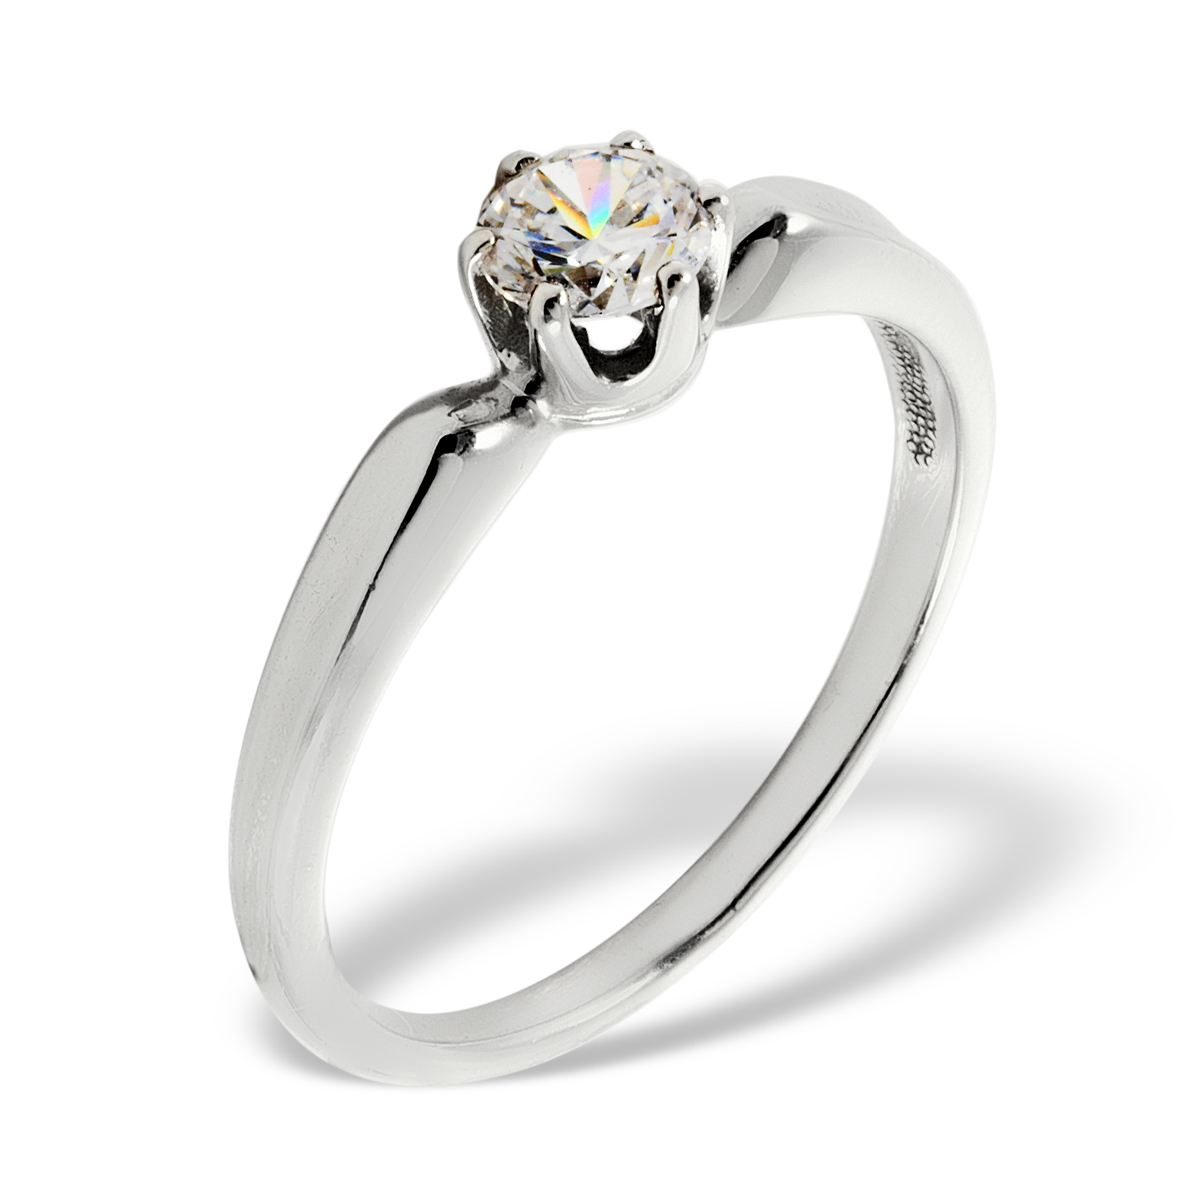 co three tiffany estate ring jewelry etoile on fine products platinum vimeo band diamond row